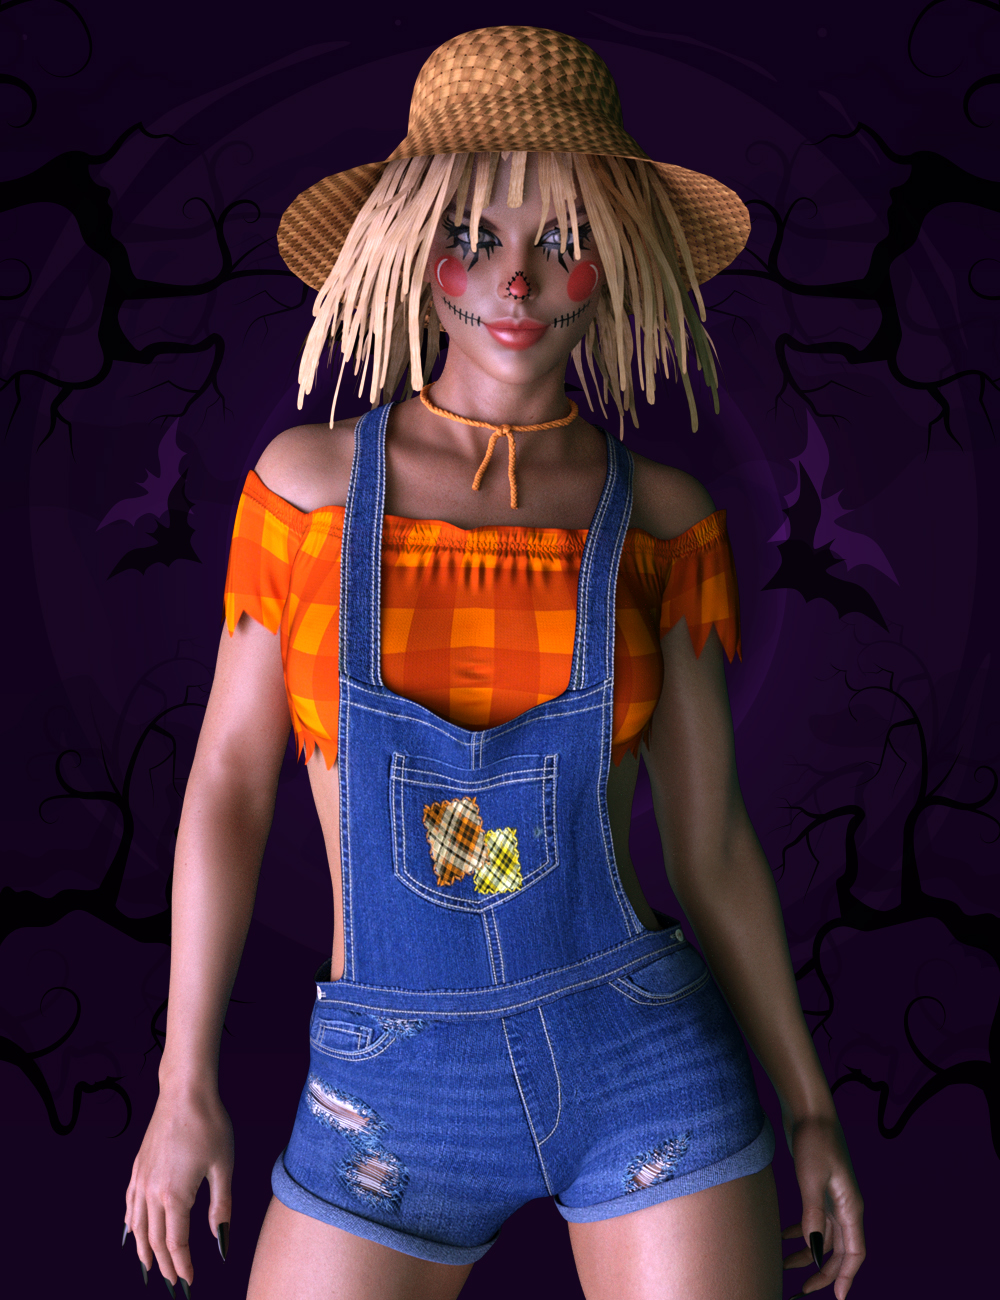 X-Fashion Scarecrow Costume for Genesis 8 Females by: xtrart-3d, 3D Models by Daz 3D